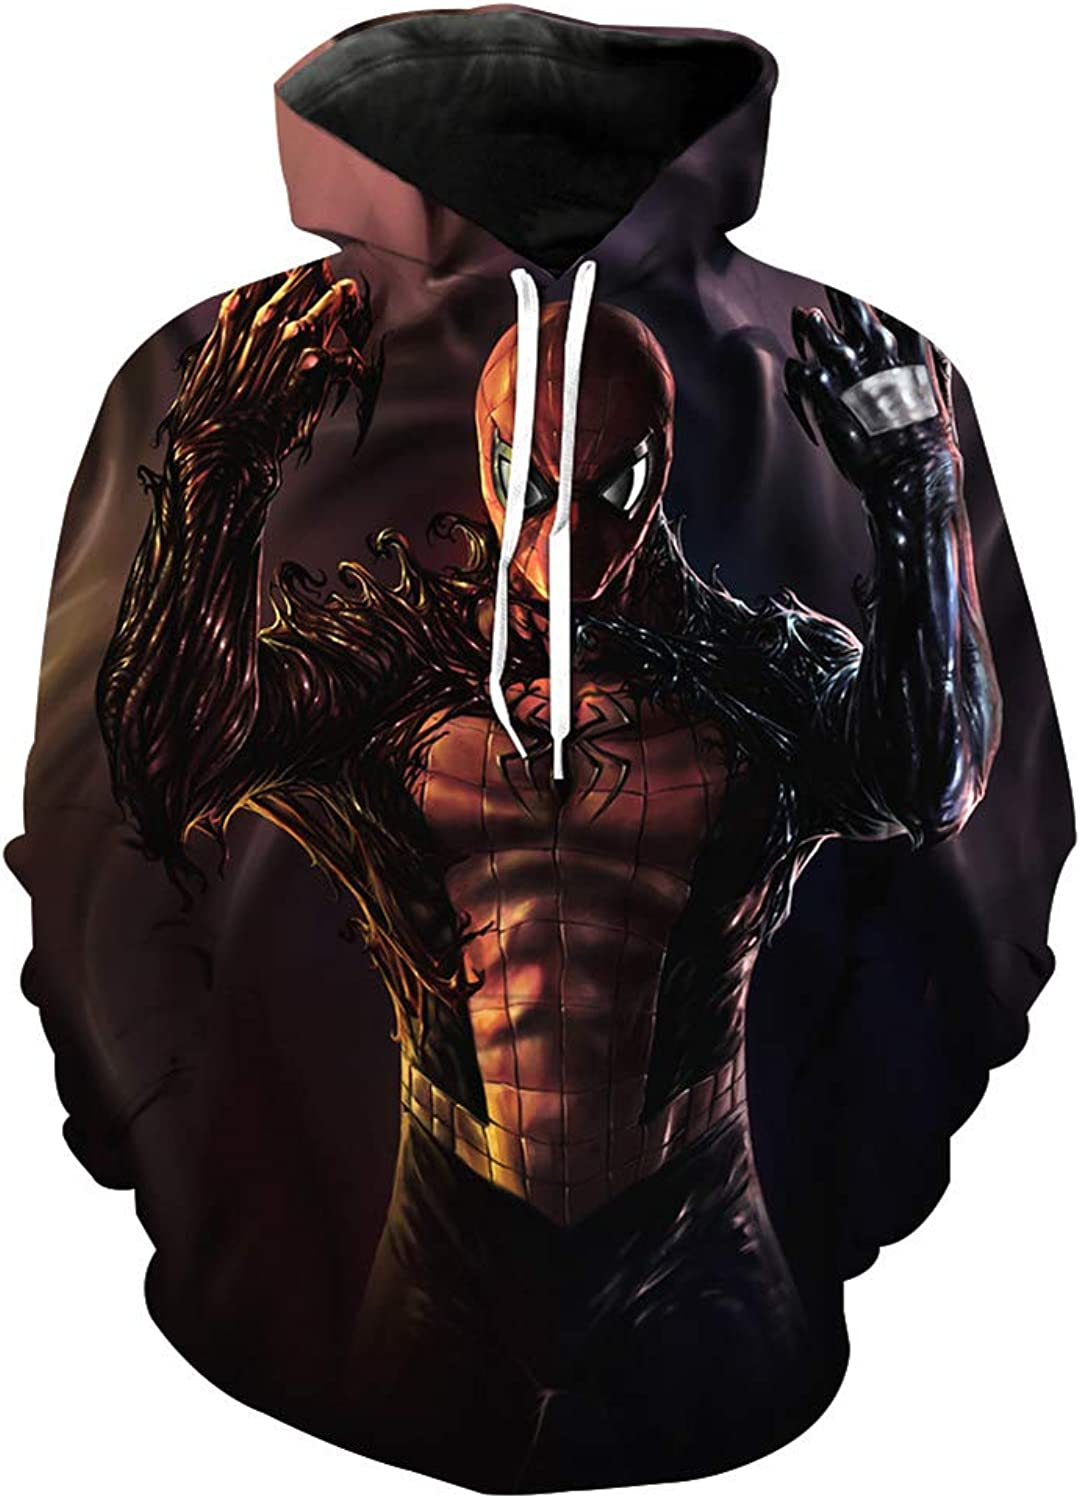 3D Printed Hoodie Hooded Sweater Sweatshirt, Fashion Super Hero Dead Venom Spider Animation Pattern Printing Hood Loose Large Size Fashion Casual Couple Sweater